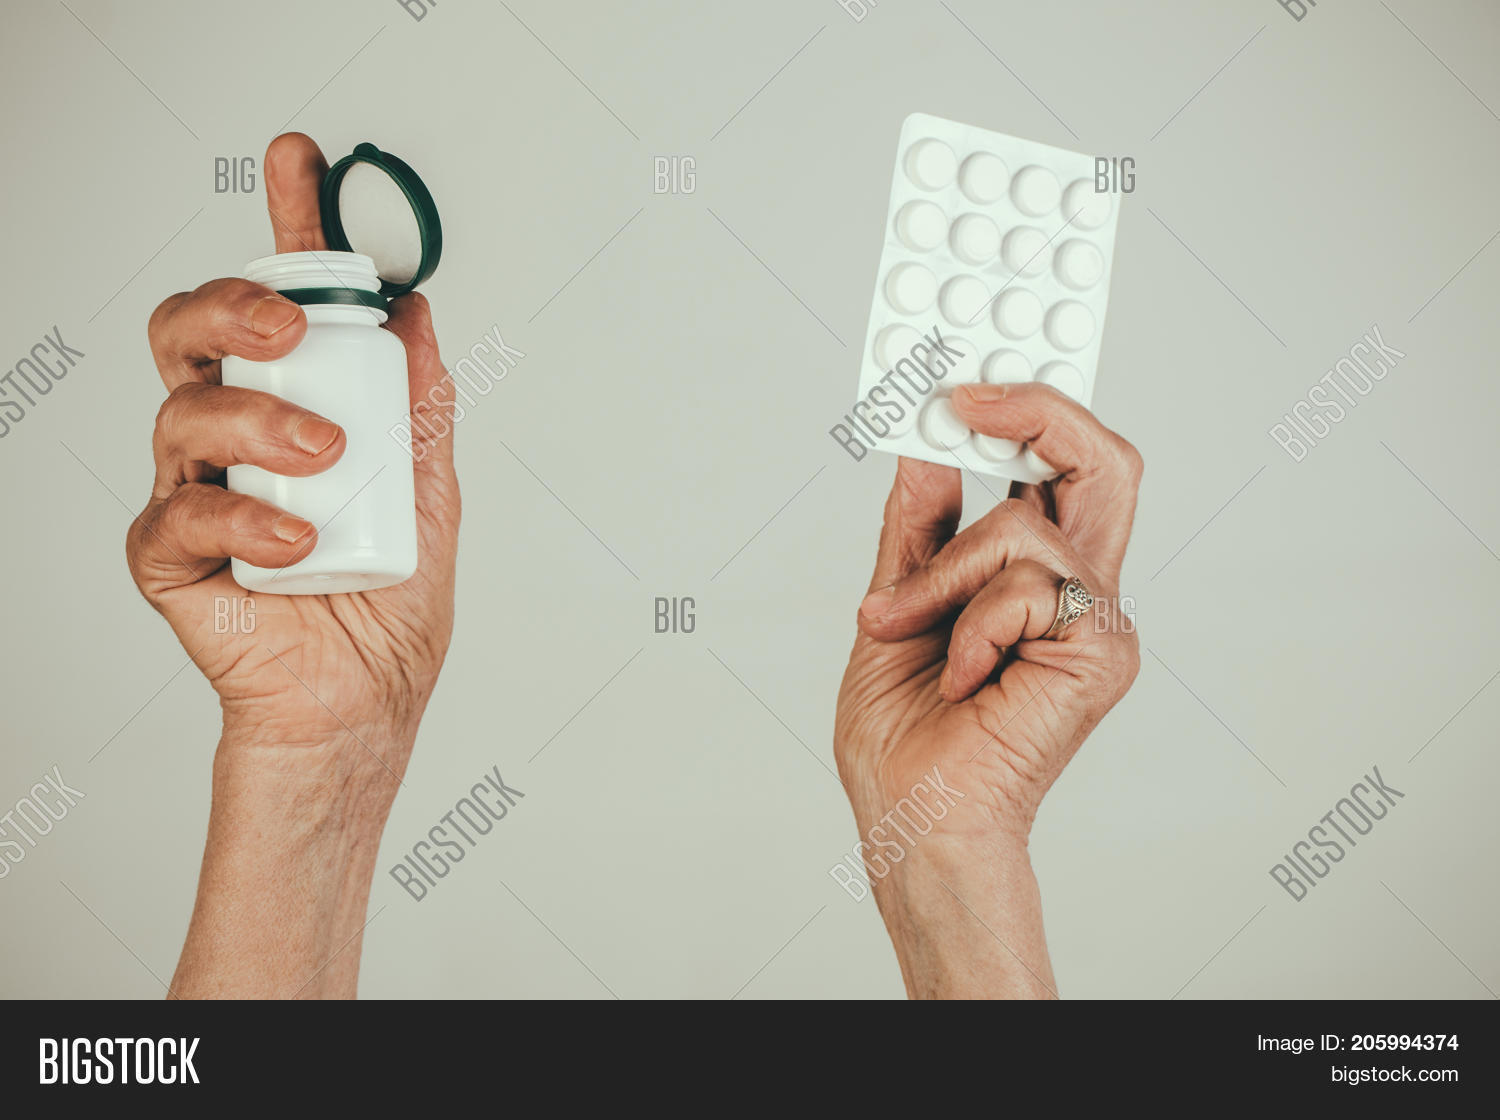 hight resolution of pills medications hands old female hands hold pills in blister pack and pill bottle packaging